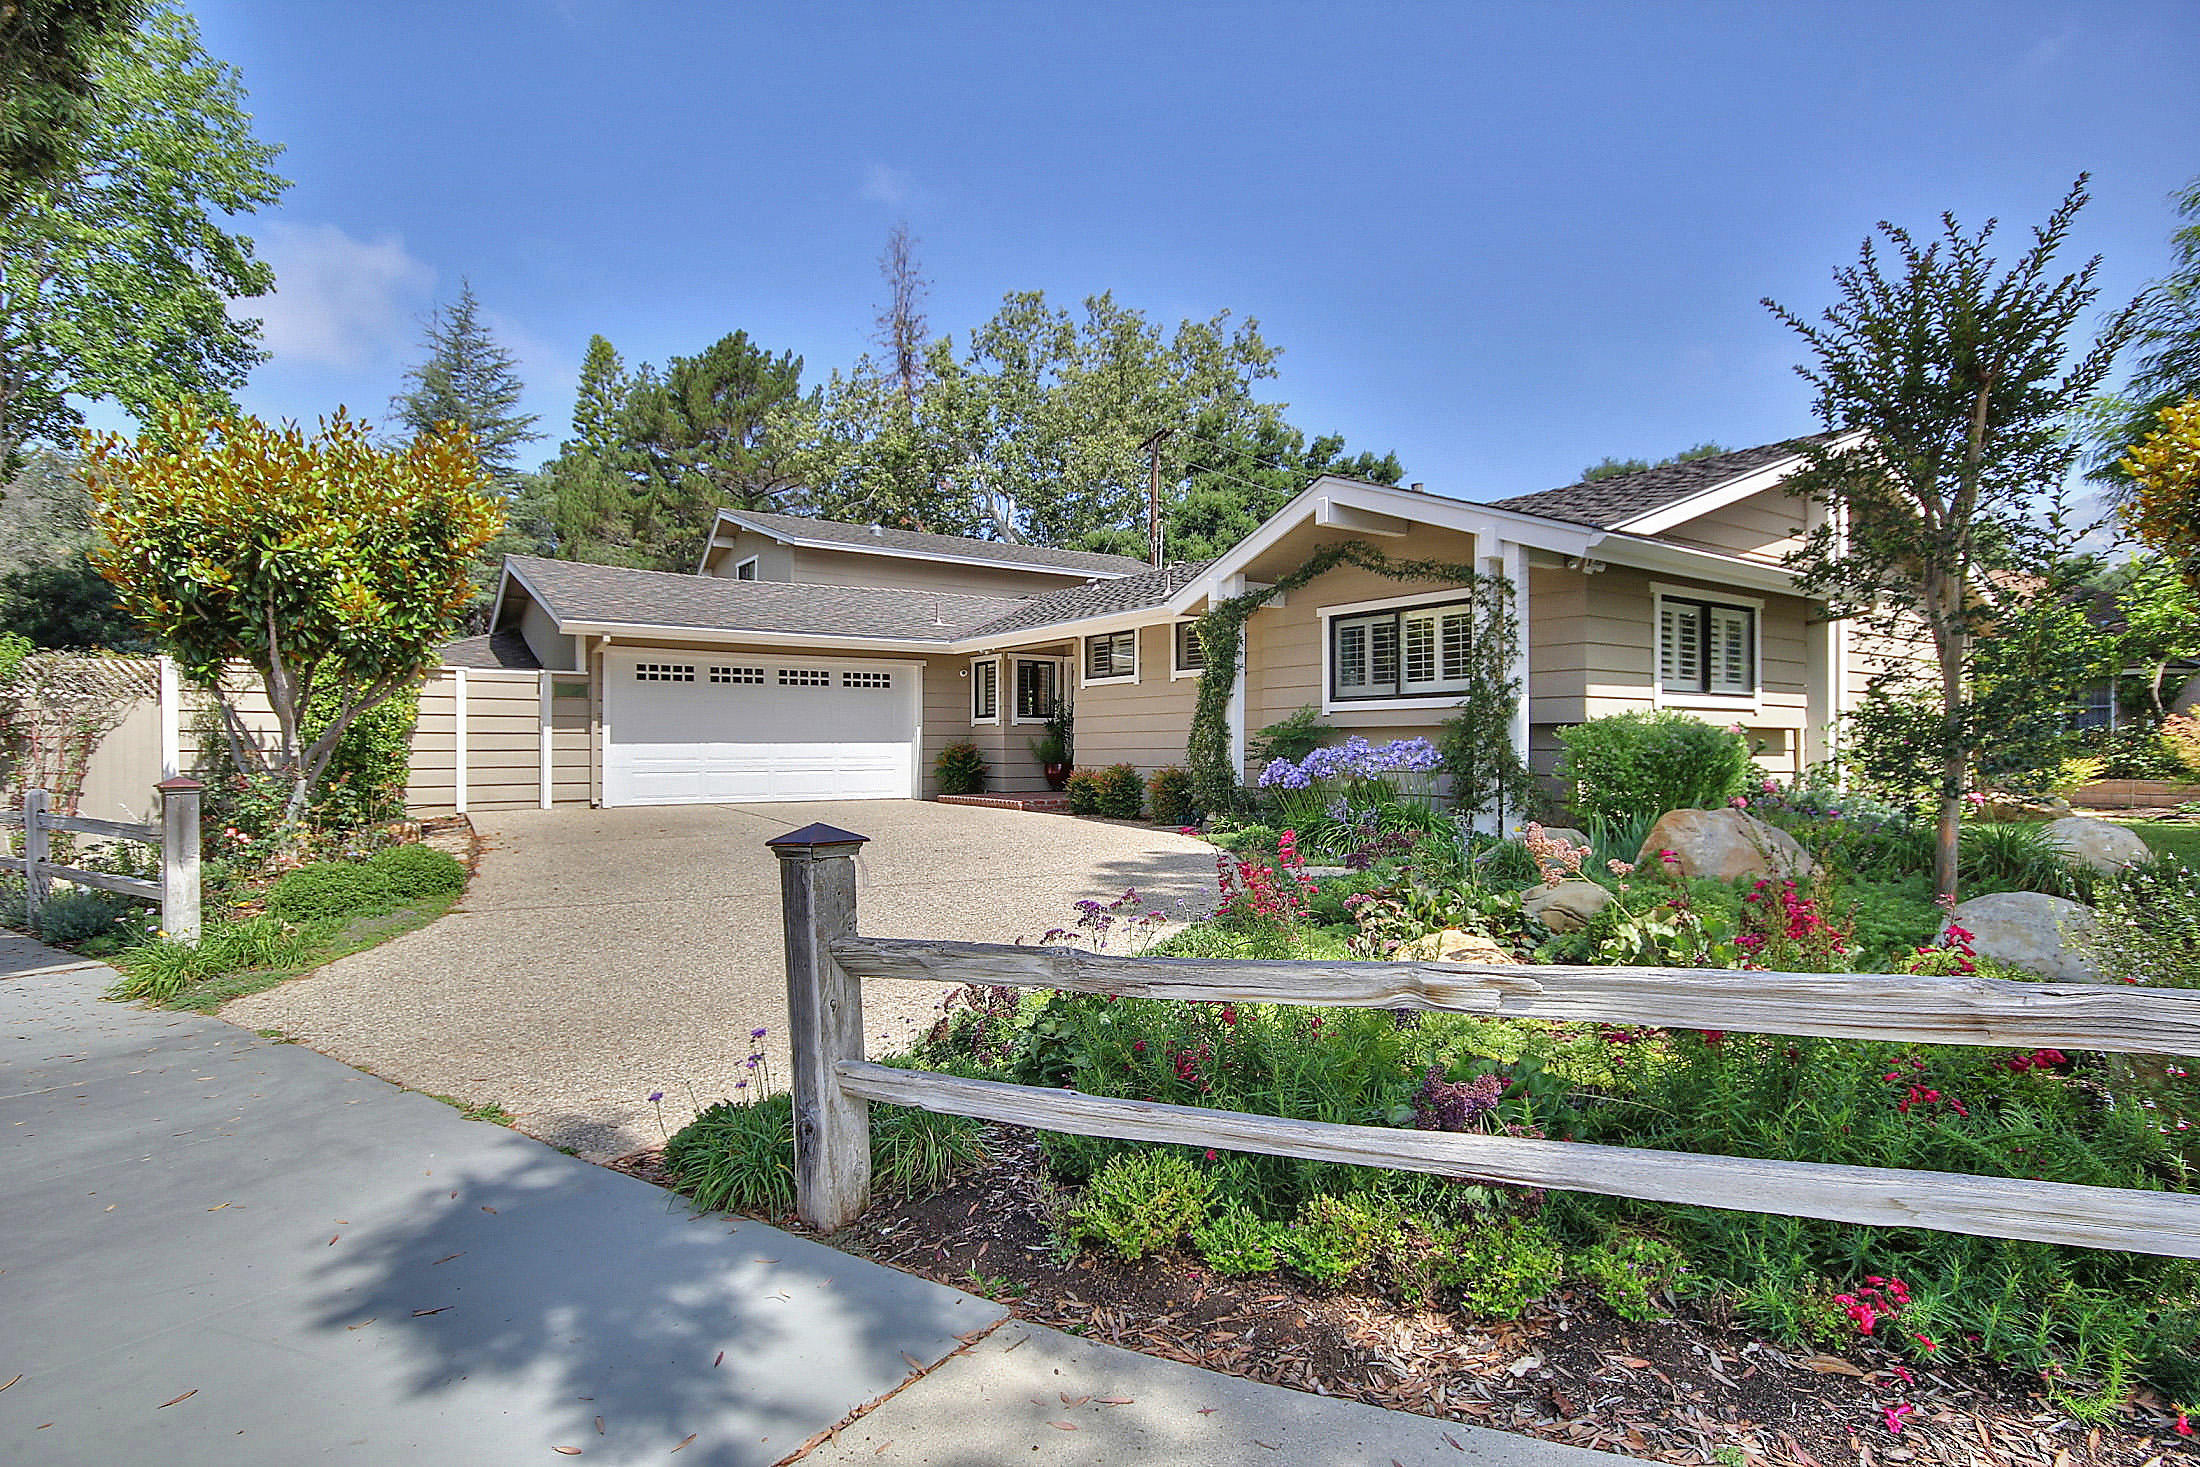 Property photo for 605 Willowglen Rd Santa Barbara, California 93105 - 15-2013